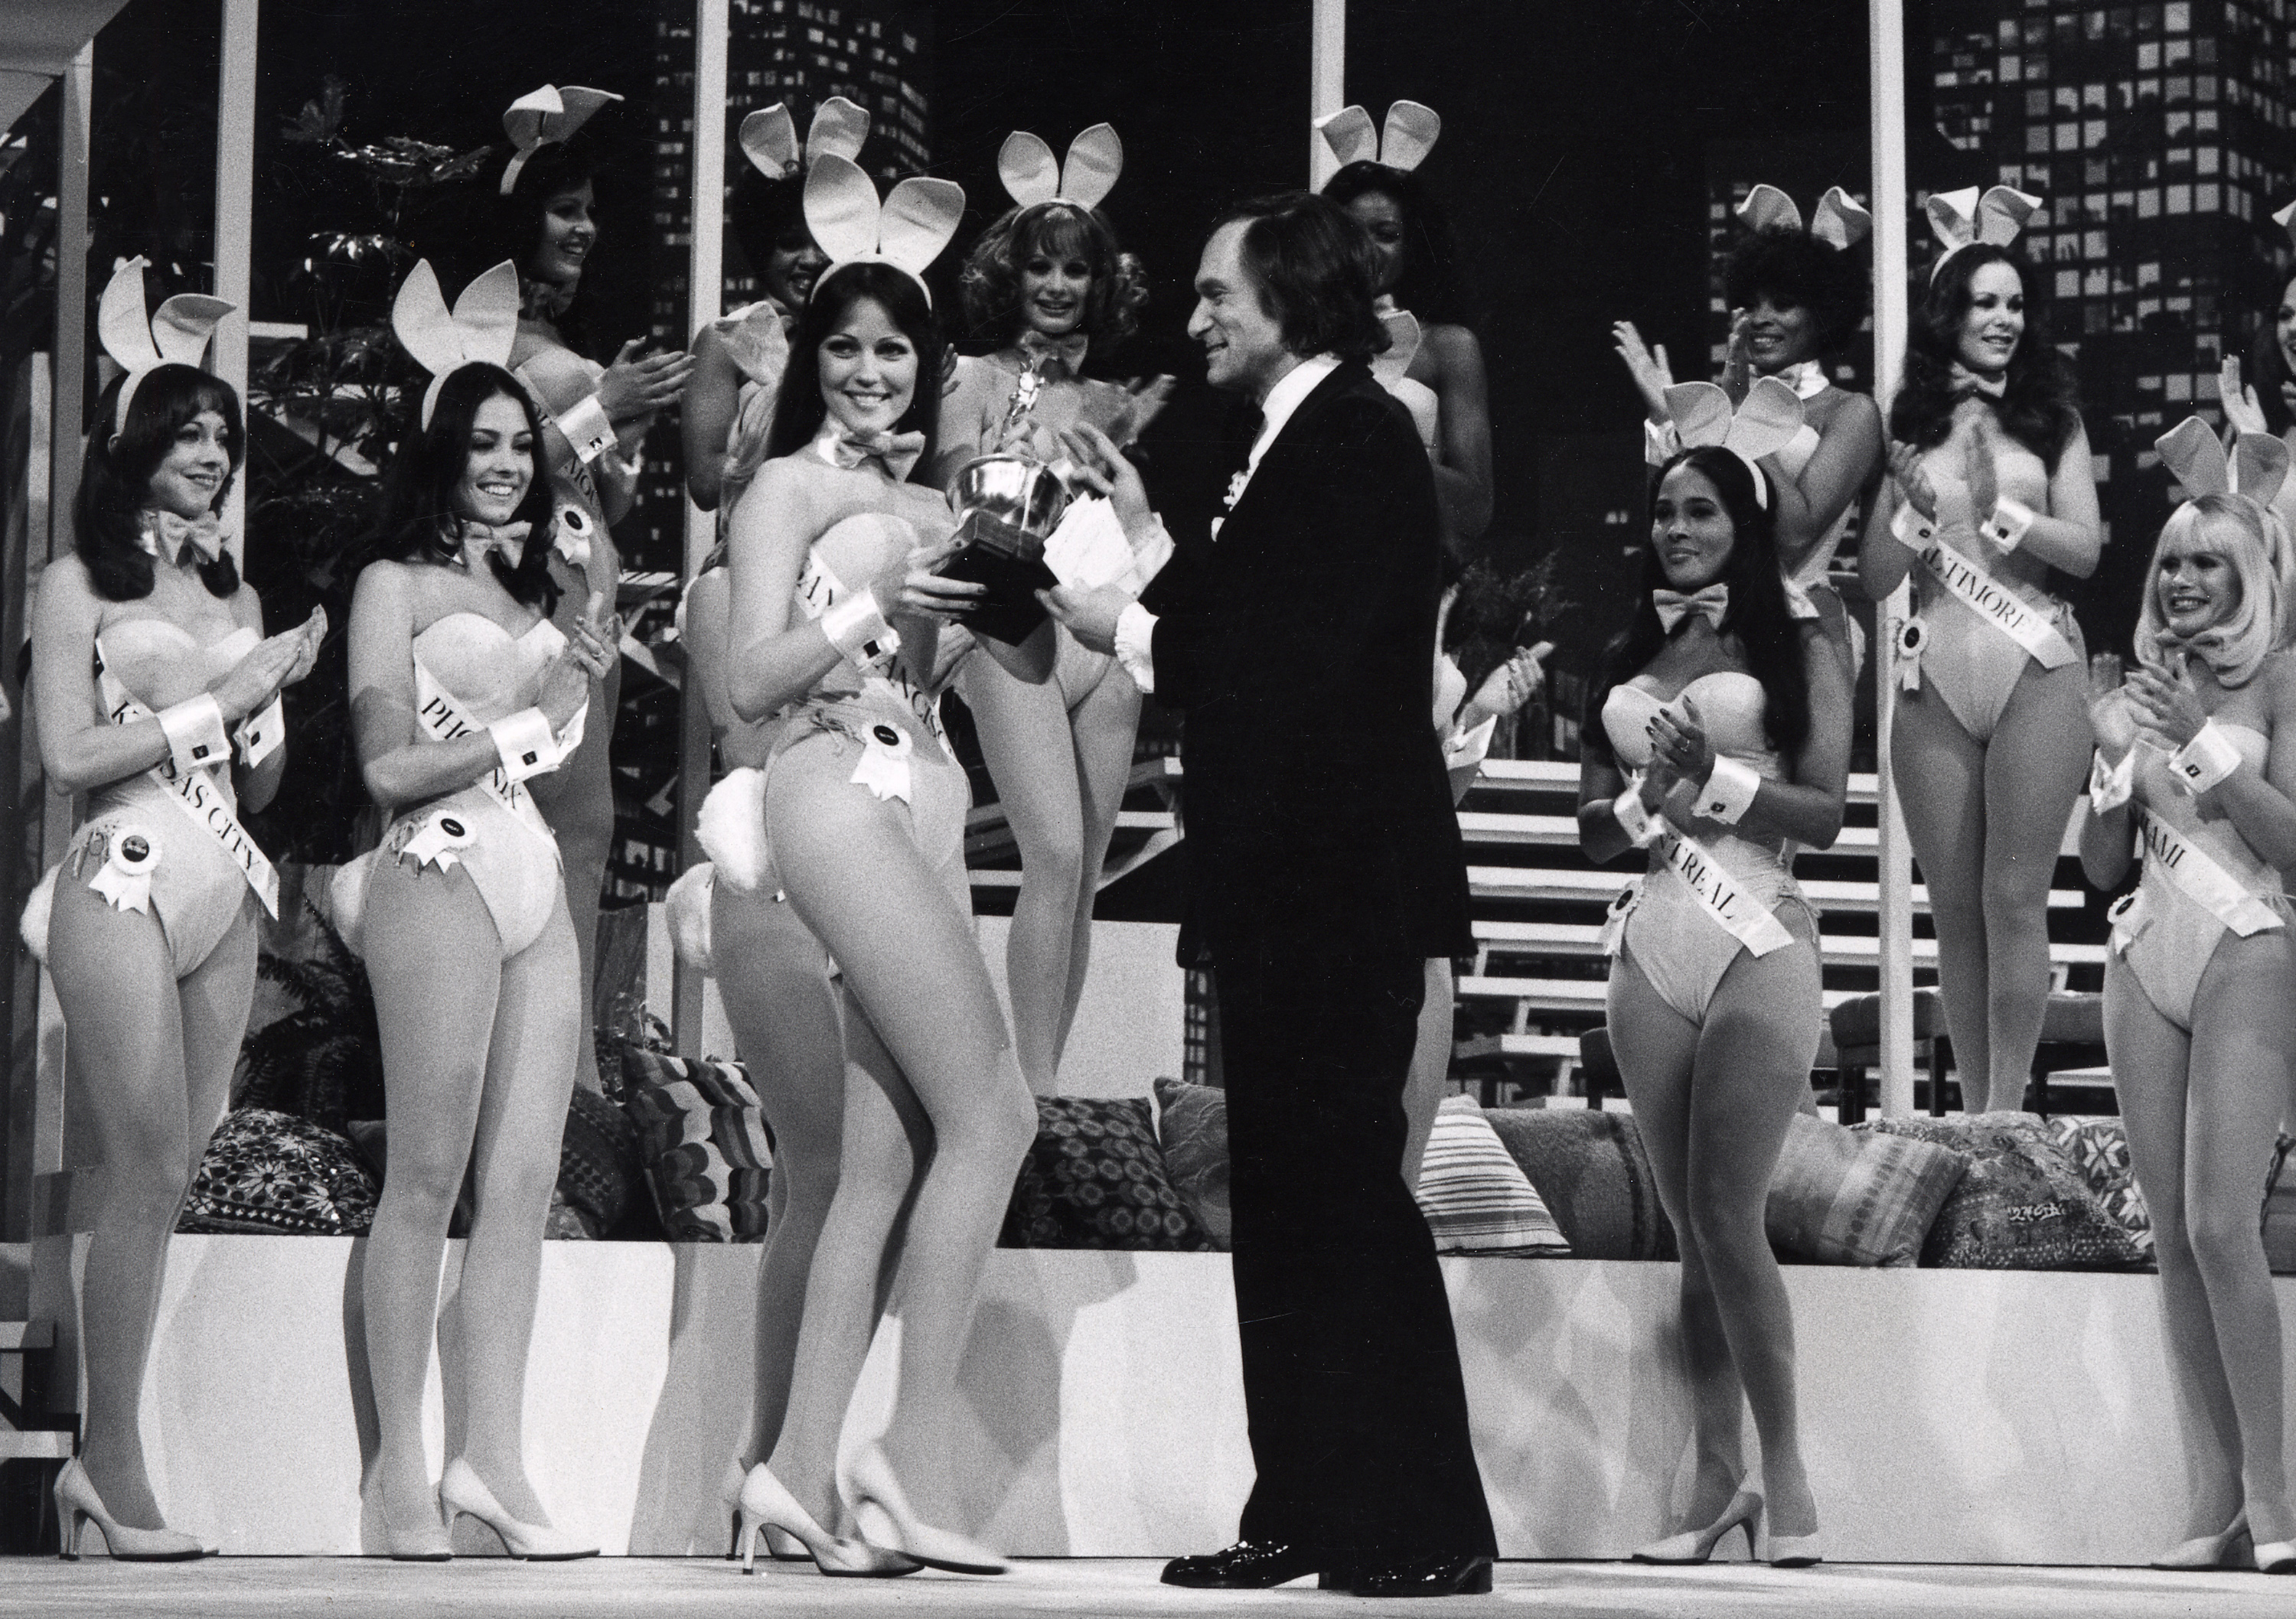 1975 Playboy Bunny of the Year Awards